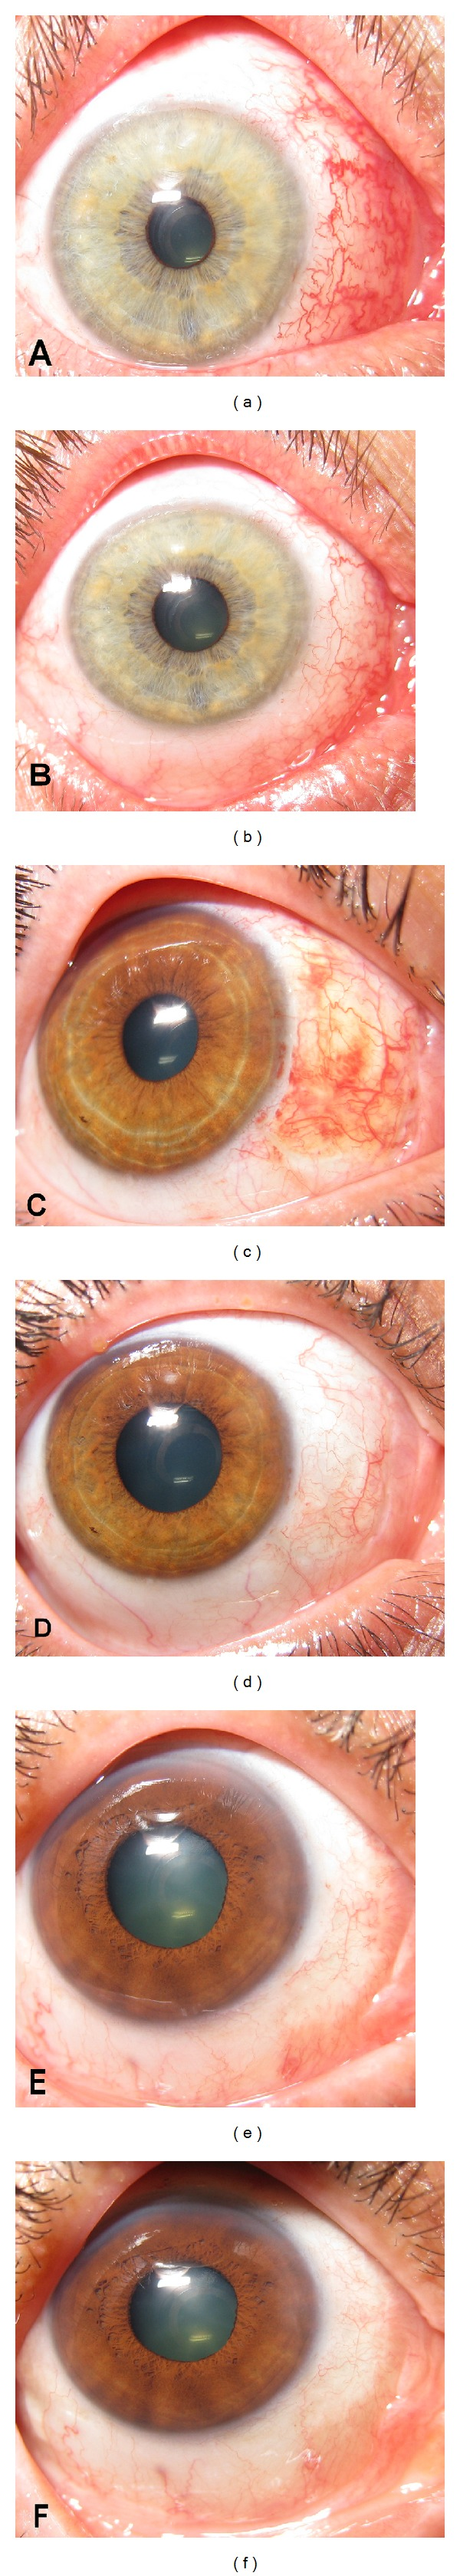 Photographs show area of conjunctival graft implantation after primary pterygium surgery in fluorometholone group at postoperative 2 weeks (a) and 1 month (b), in dexamethasone group at postoperative 2 weeks (c) and 1 month (d), and in the fluorometholone/tetrahydrozoline group at postoperative 2 weeks (e) and 1 month (f).